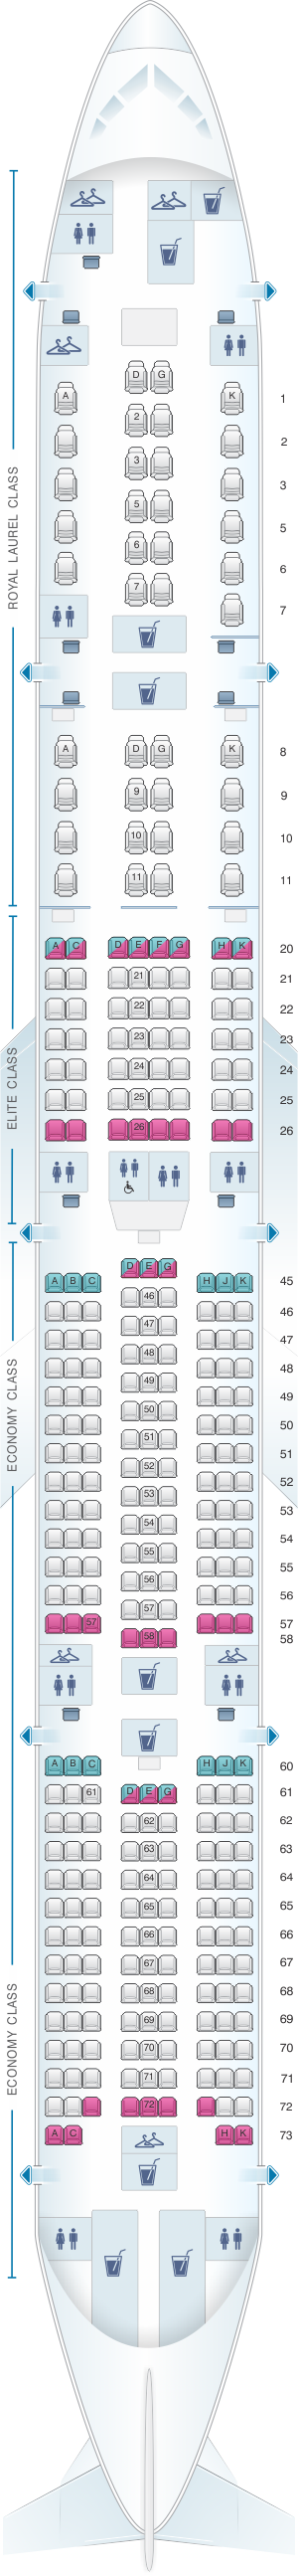 Seat map for EVA Air Boeing B777 300ER 333PAX